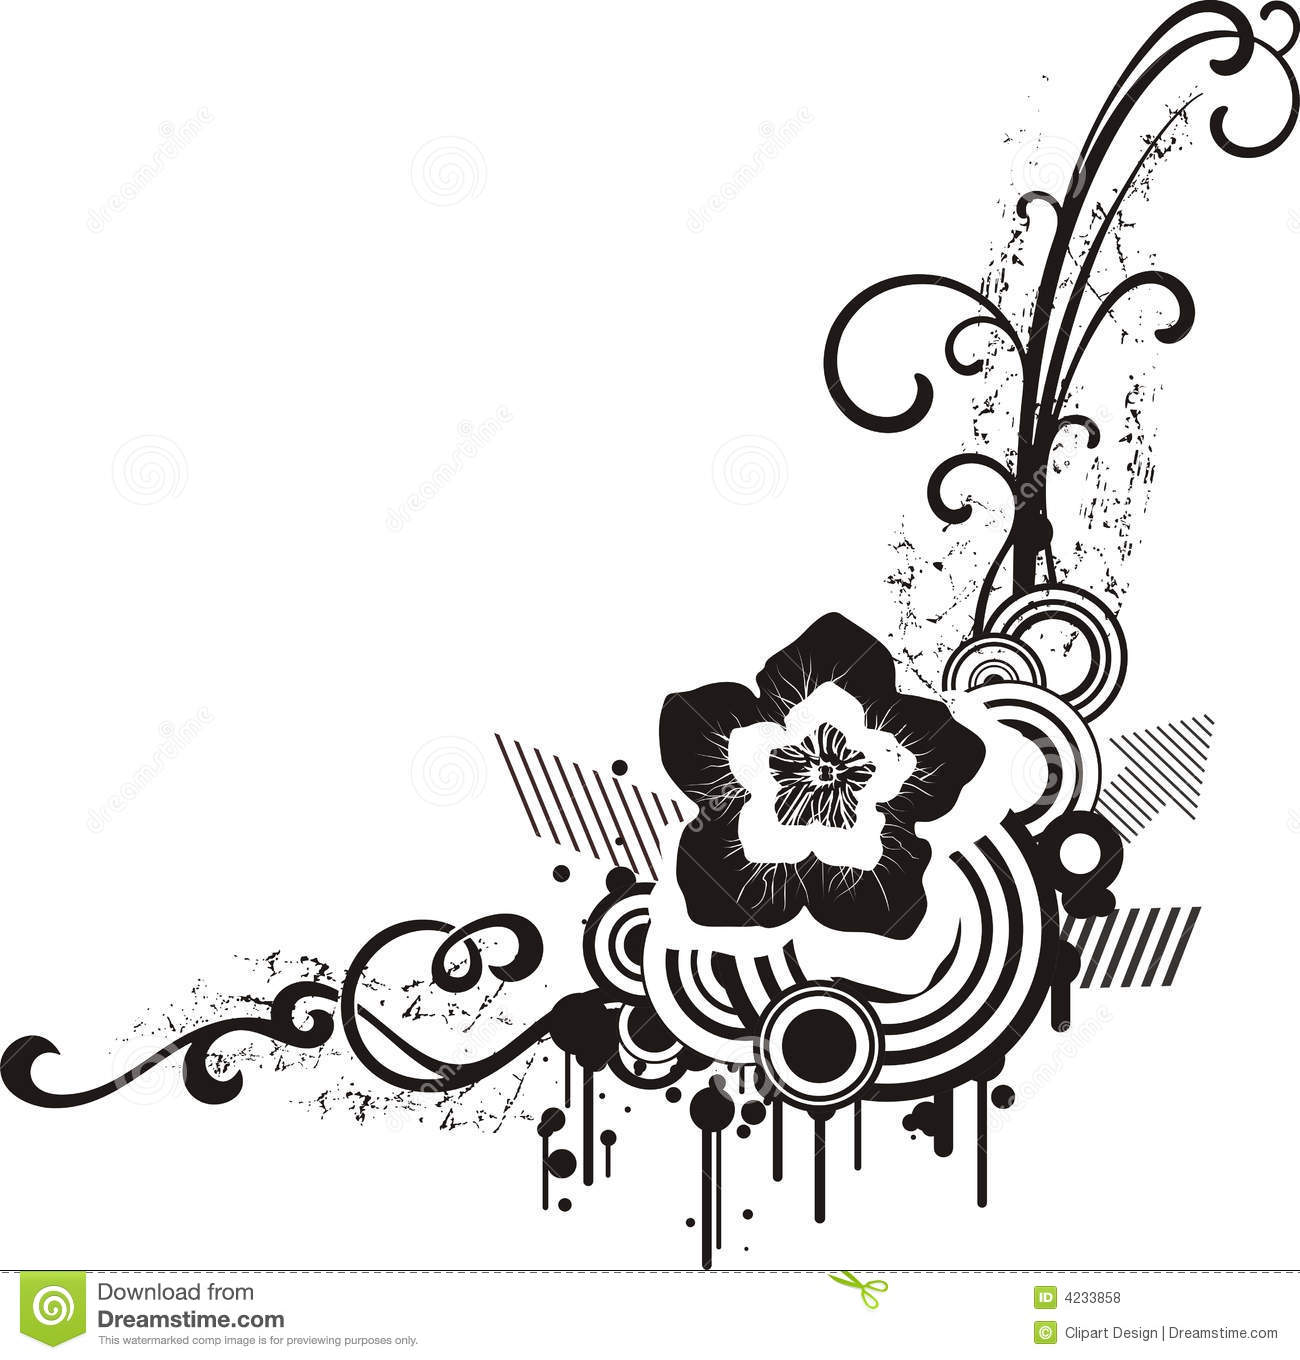 Black and White Floral Designs